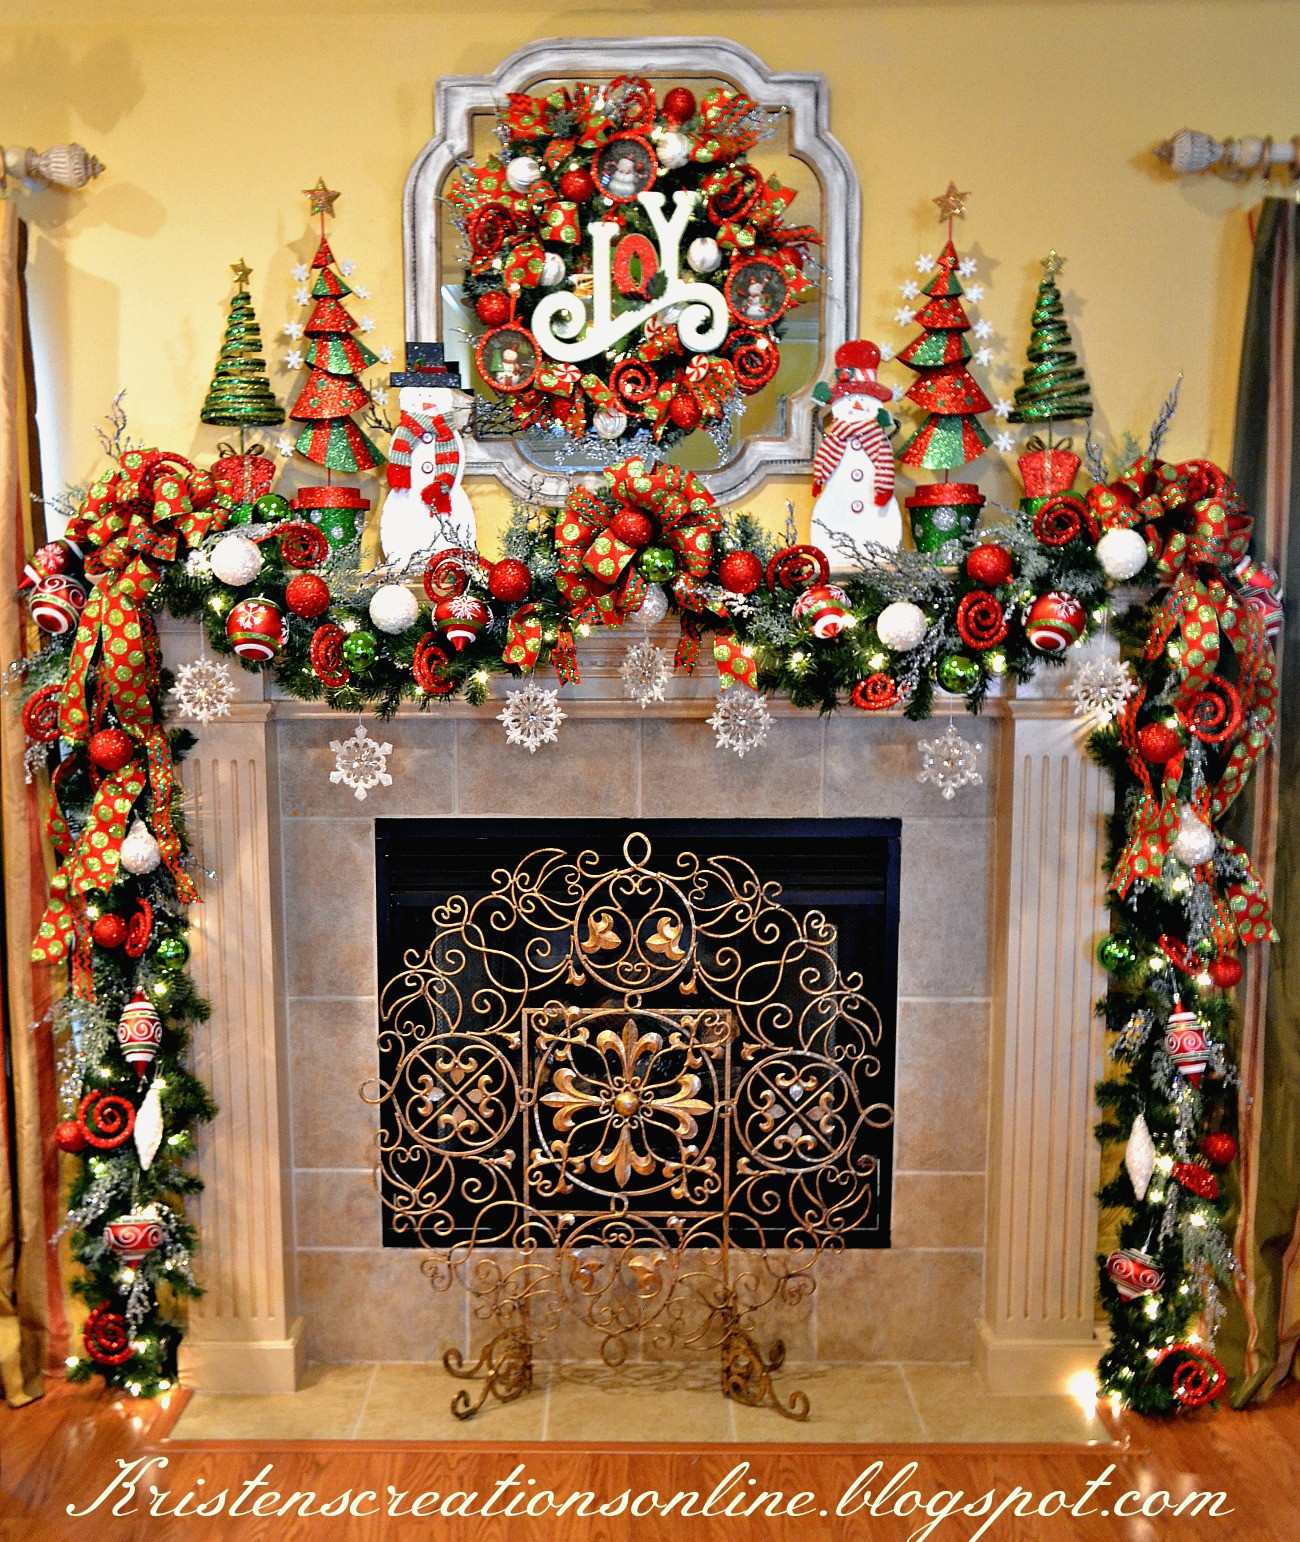 Christmas Themed Fireplace Screen  Kristen s Creations Whimsical Snowman Mantel 2015